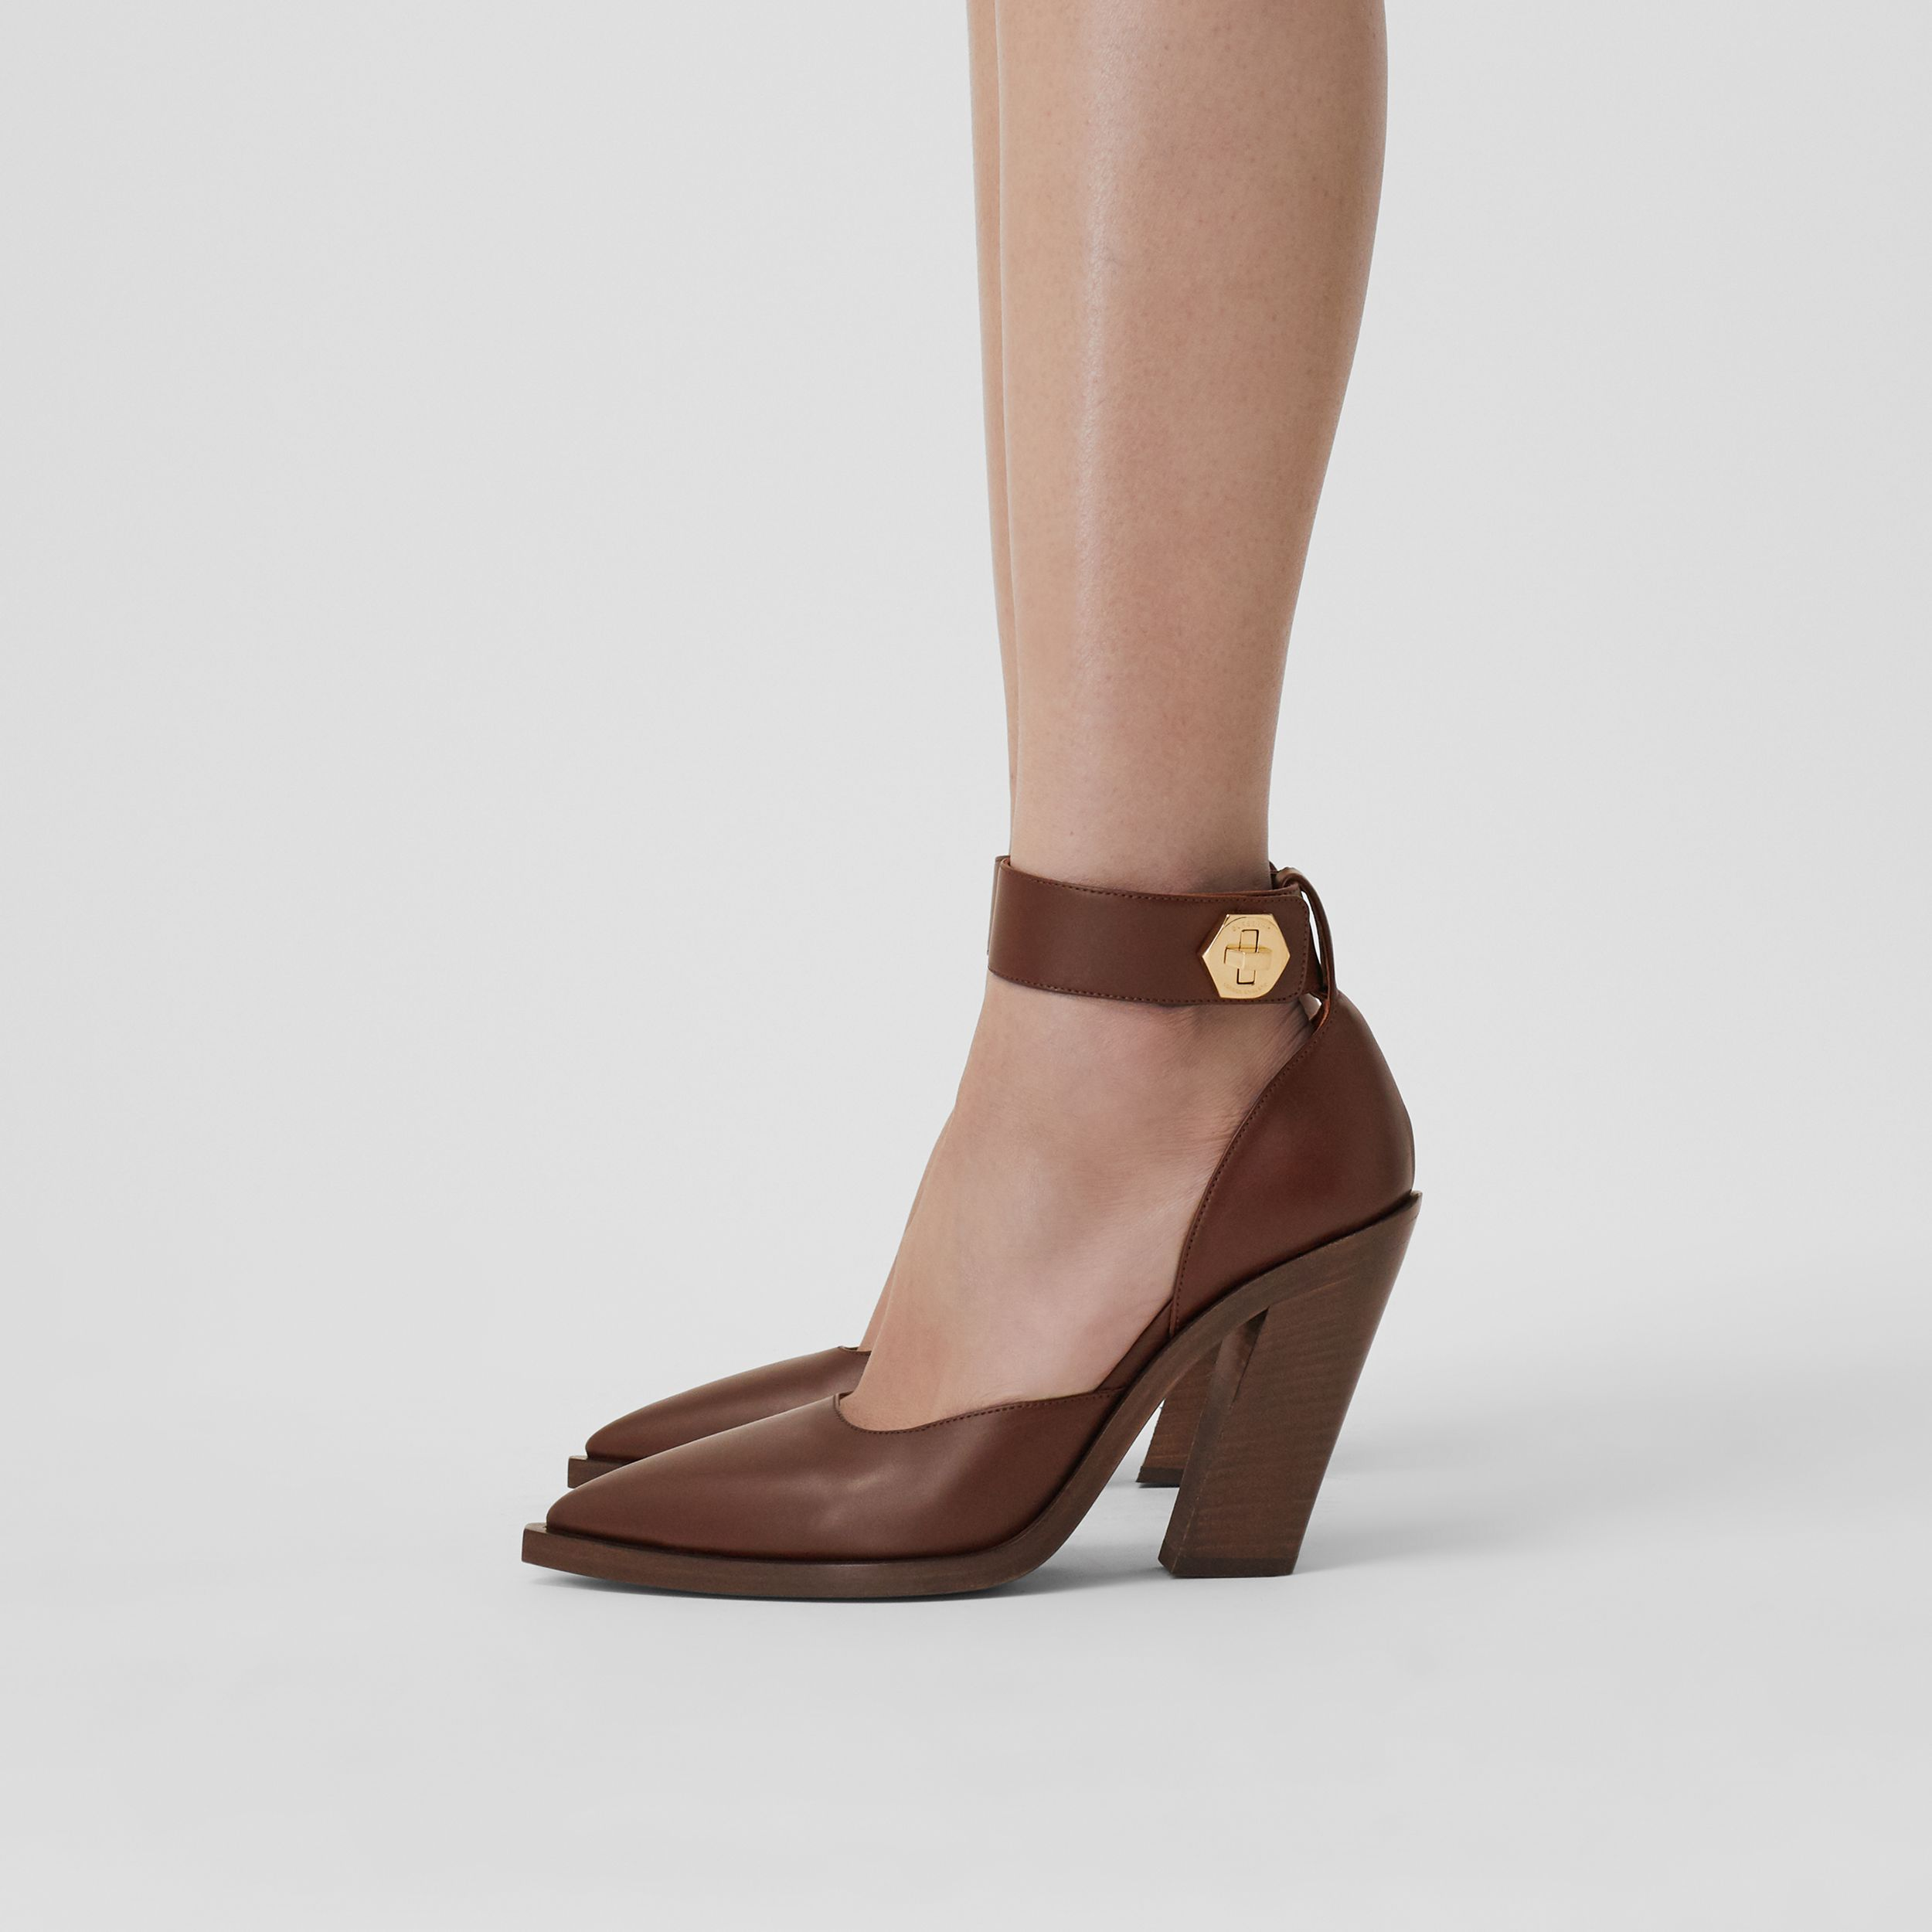 Leather Point-toe Pumps in Tan - Women | Burberry - 3